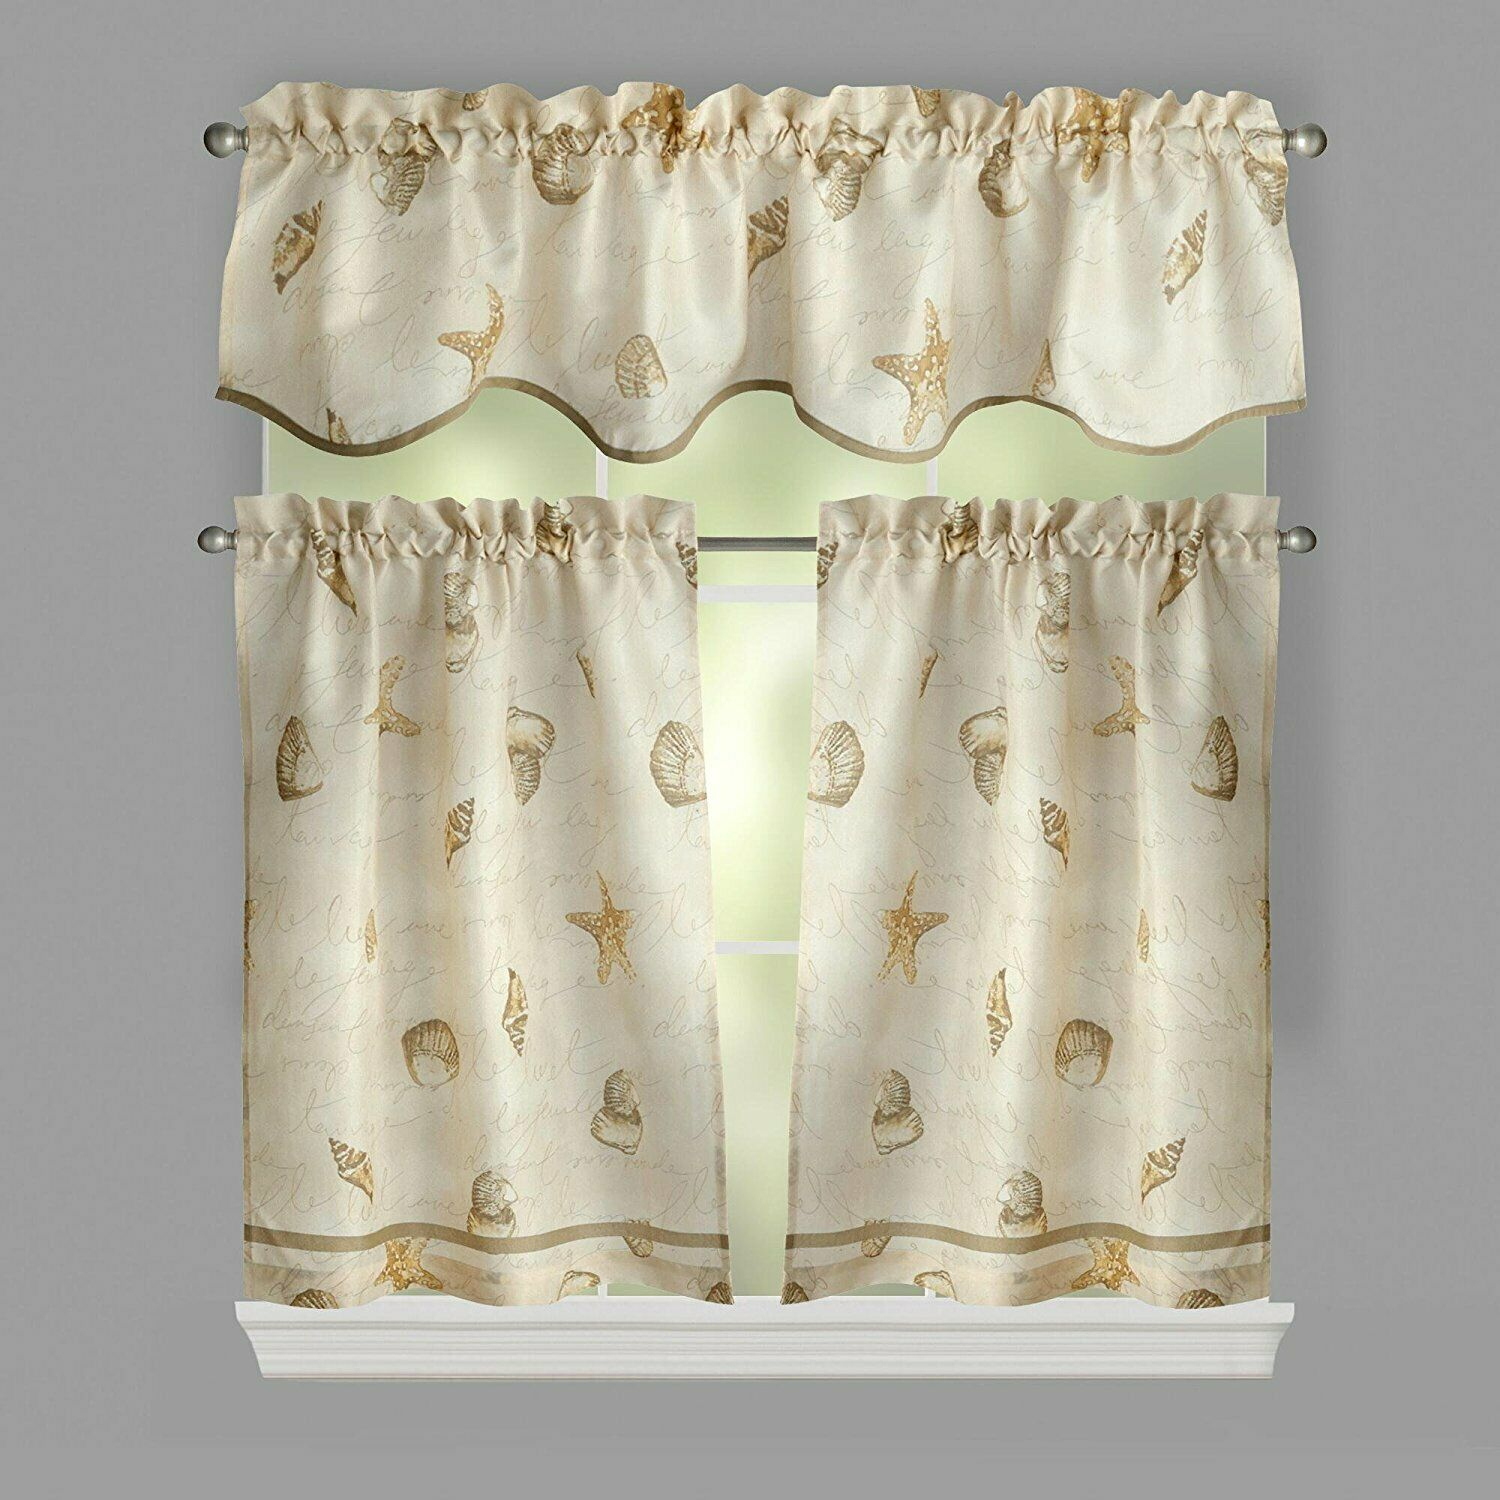 Ellery Homestyles 36 Inch Tiers And Valance Curtain Set Shells Seashells Within Coastal Tier And Valance Window Curtain Sets (View 14 of 20)